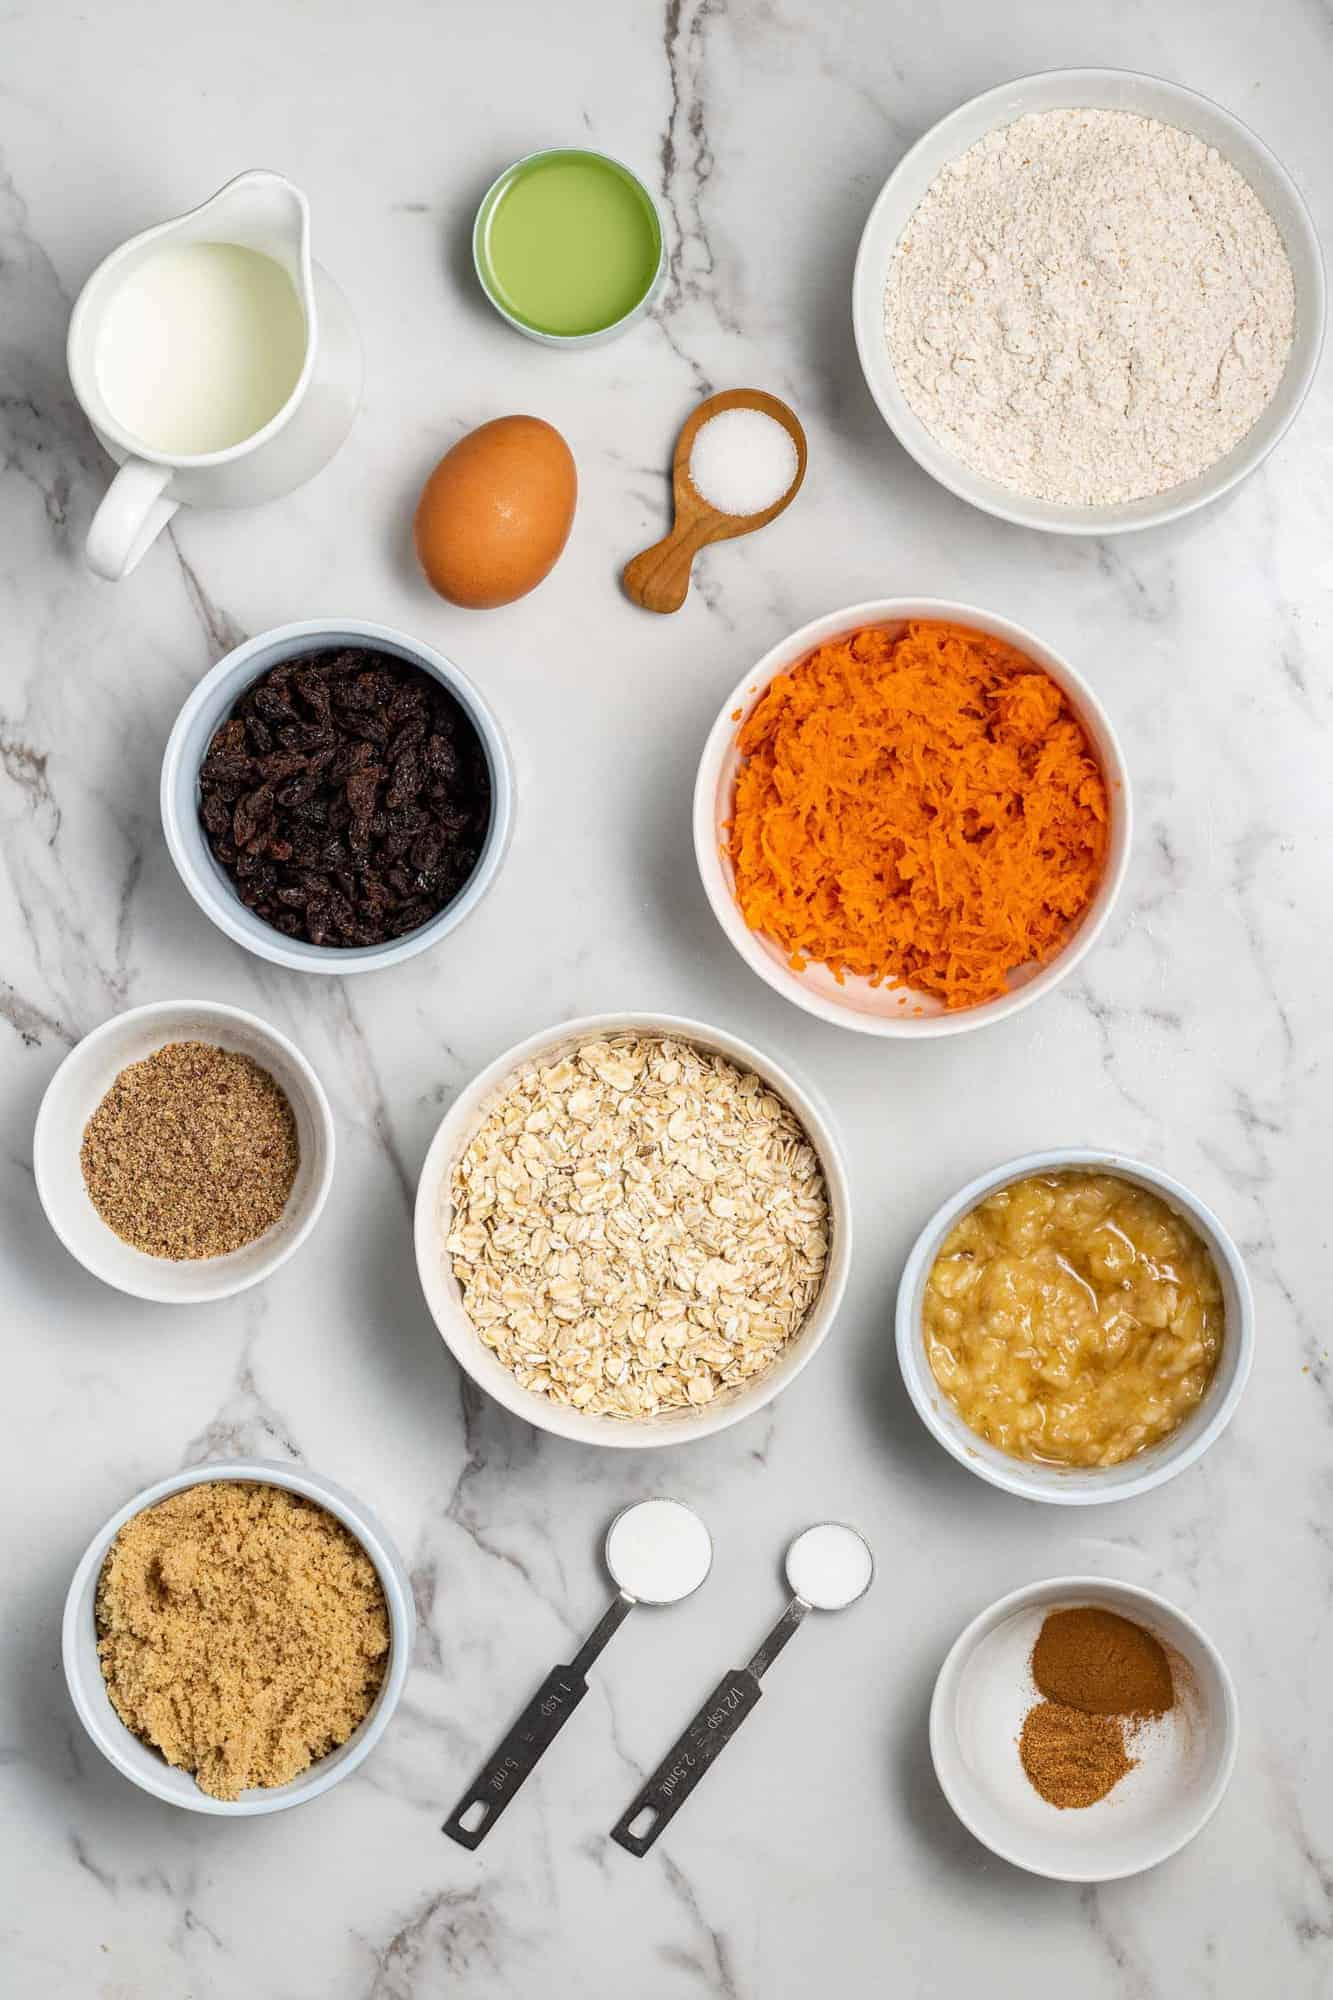 Overhead view of ingredients used in recipe.